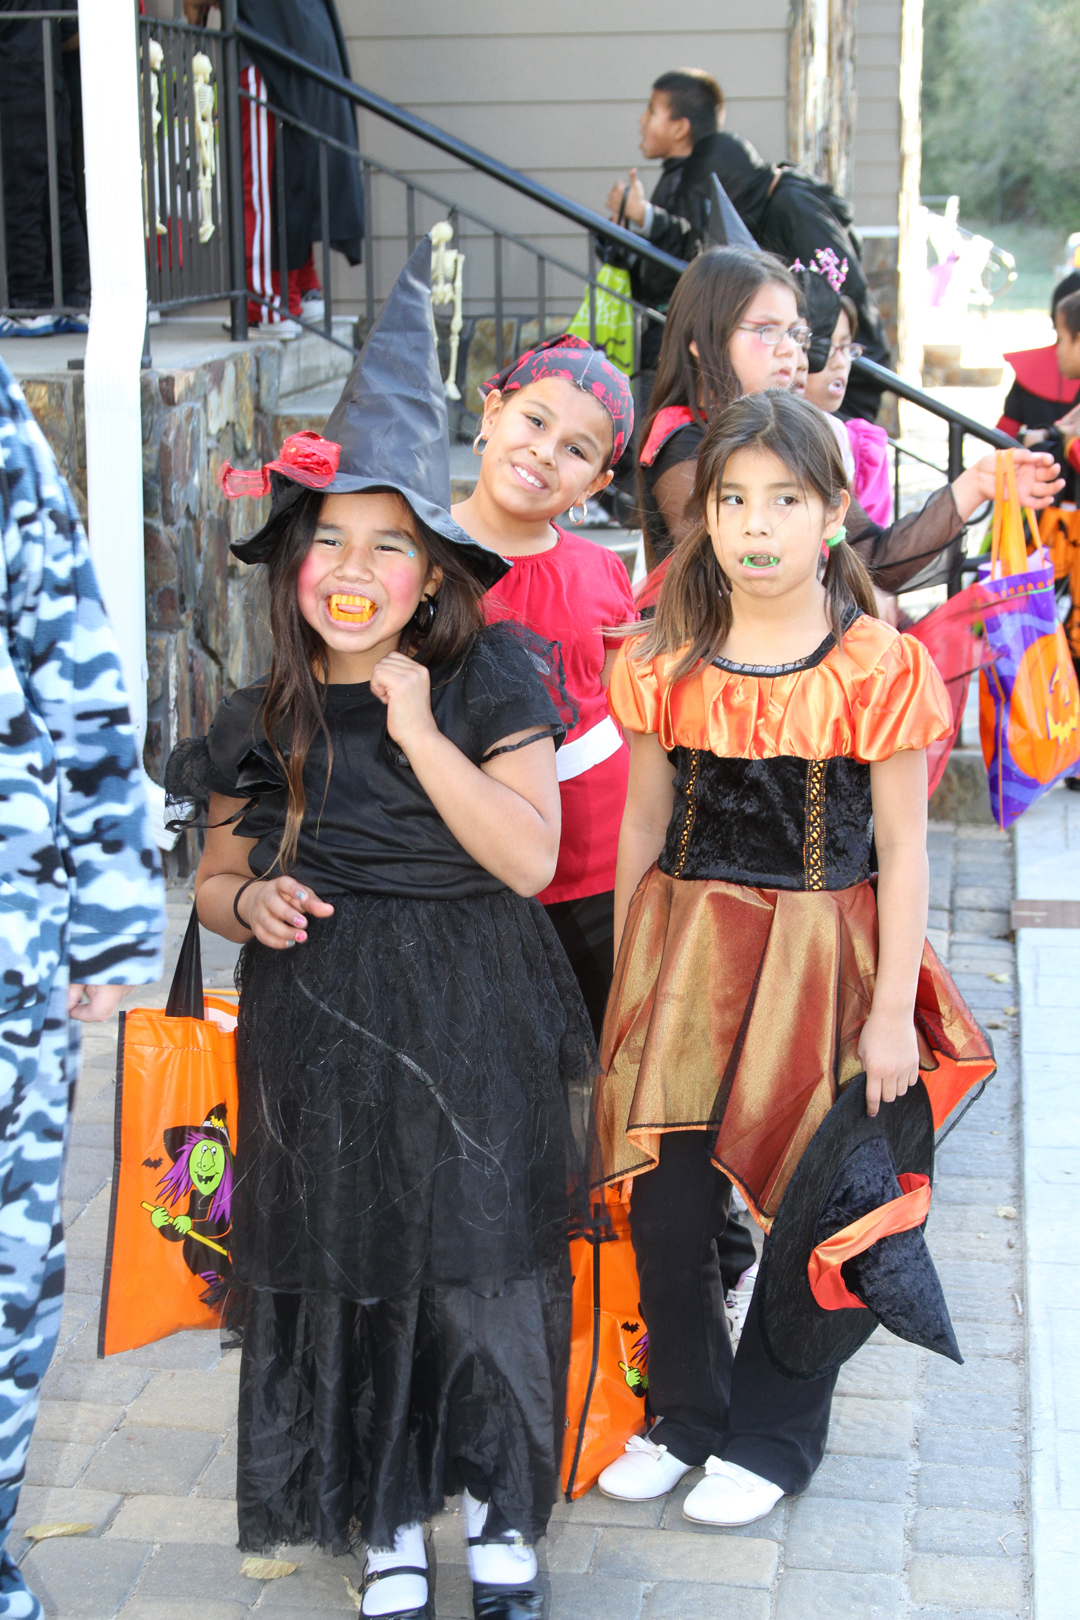 Halloween fun at St. Joseph's Indian School.